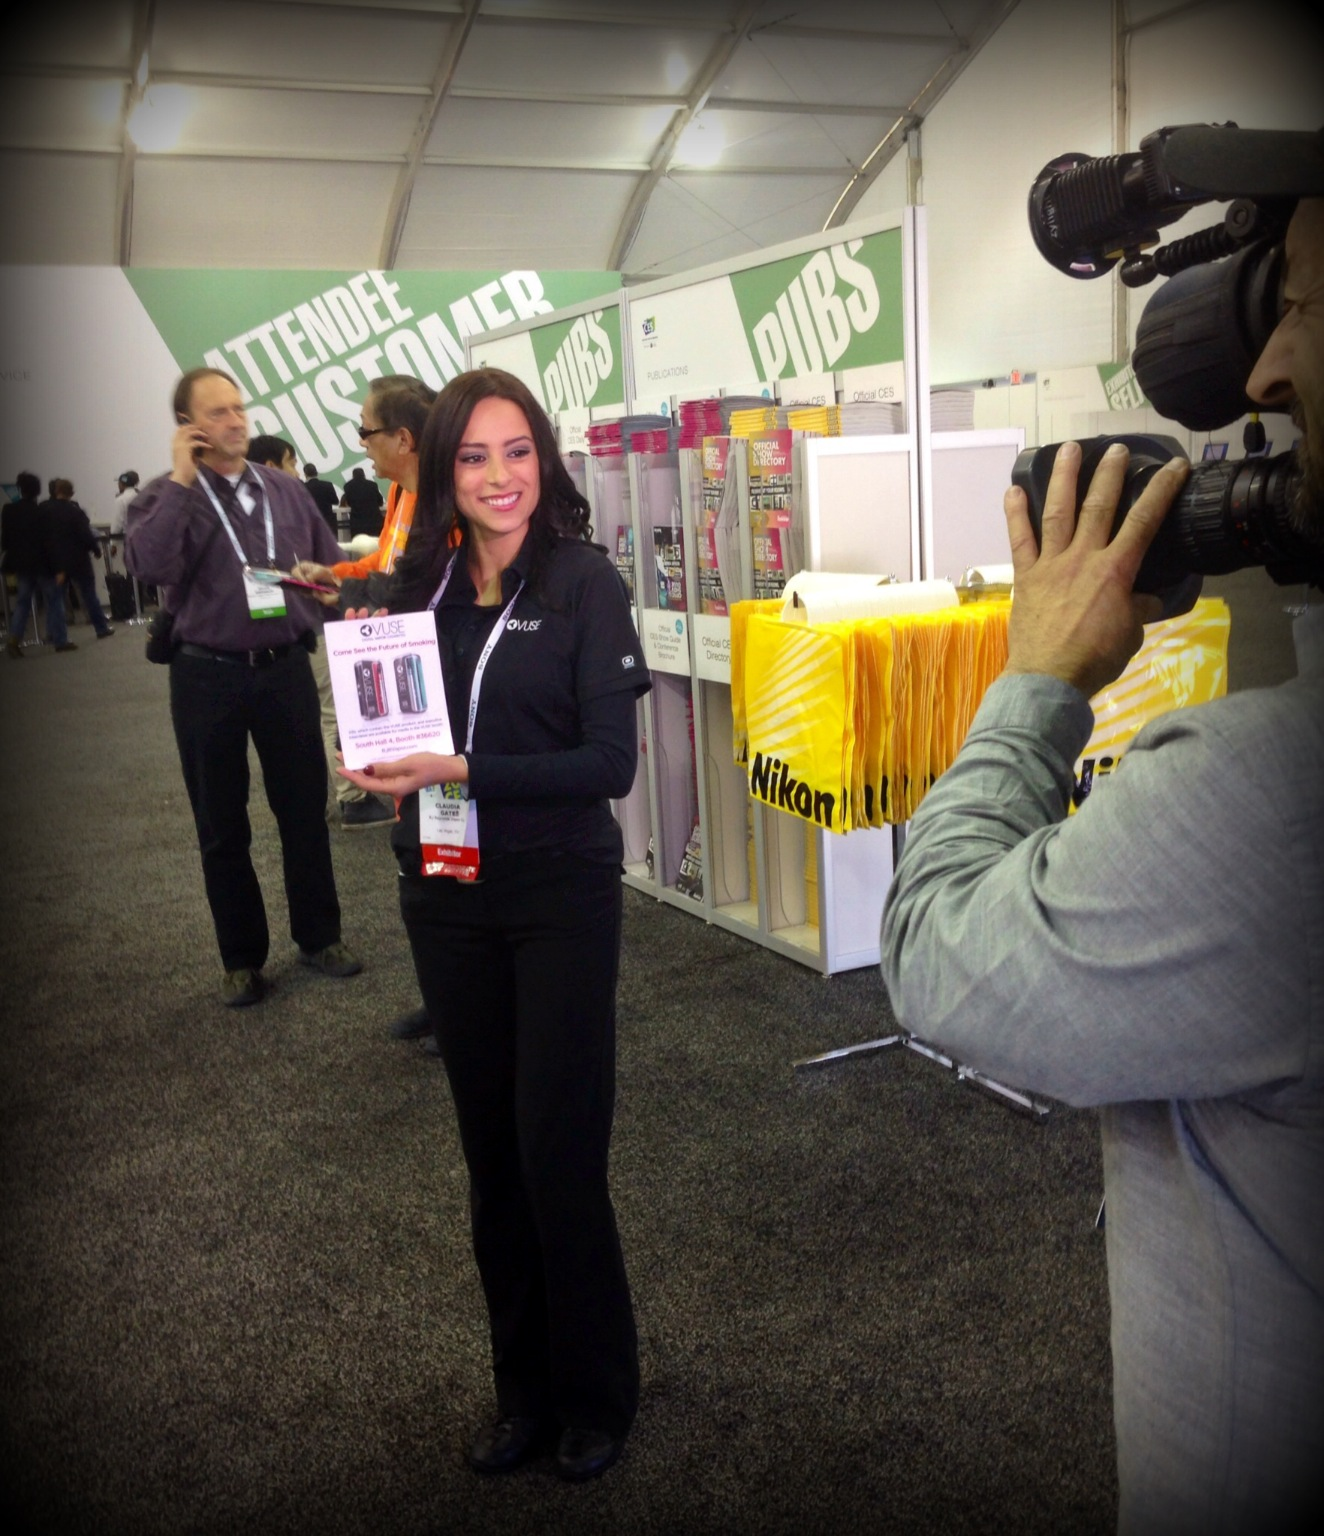 Los Angeles Trade Show Booth Assistant CLAUDIA GATES 94812